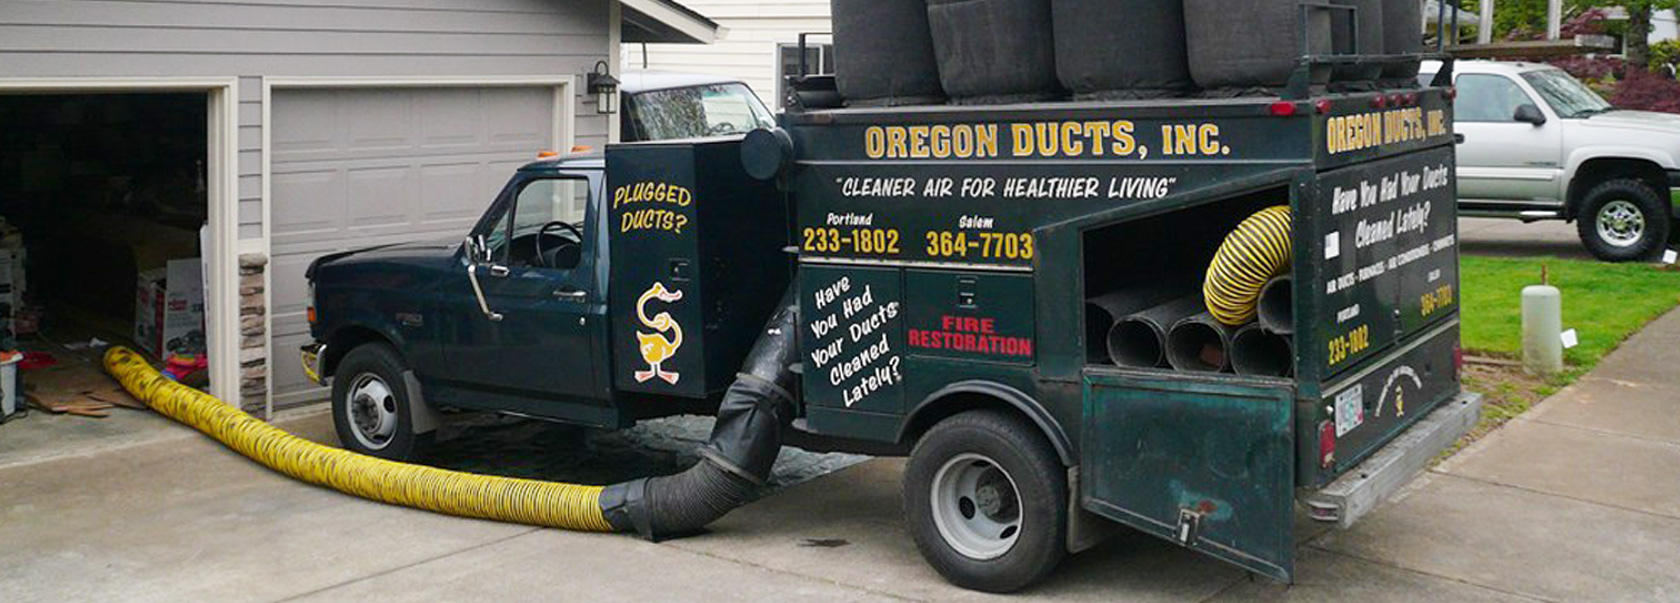 12 steps to a professional air duct cleaning job - Duct Cleaning Jobs